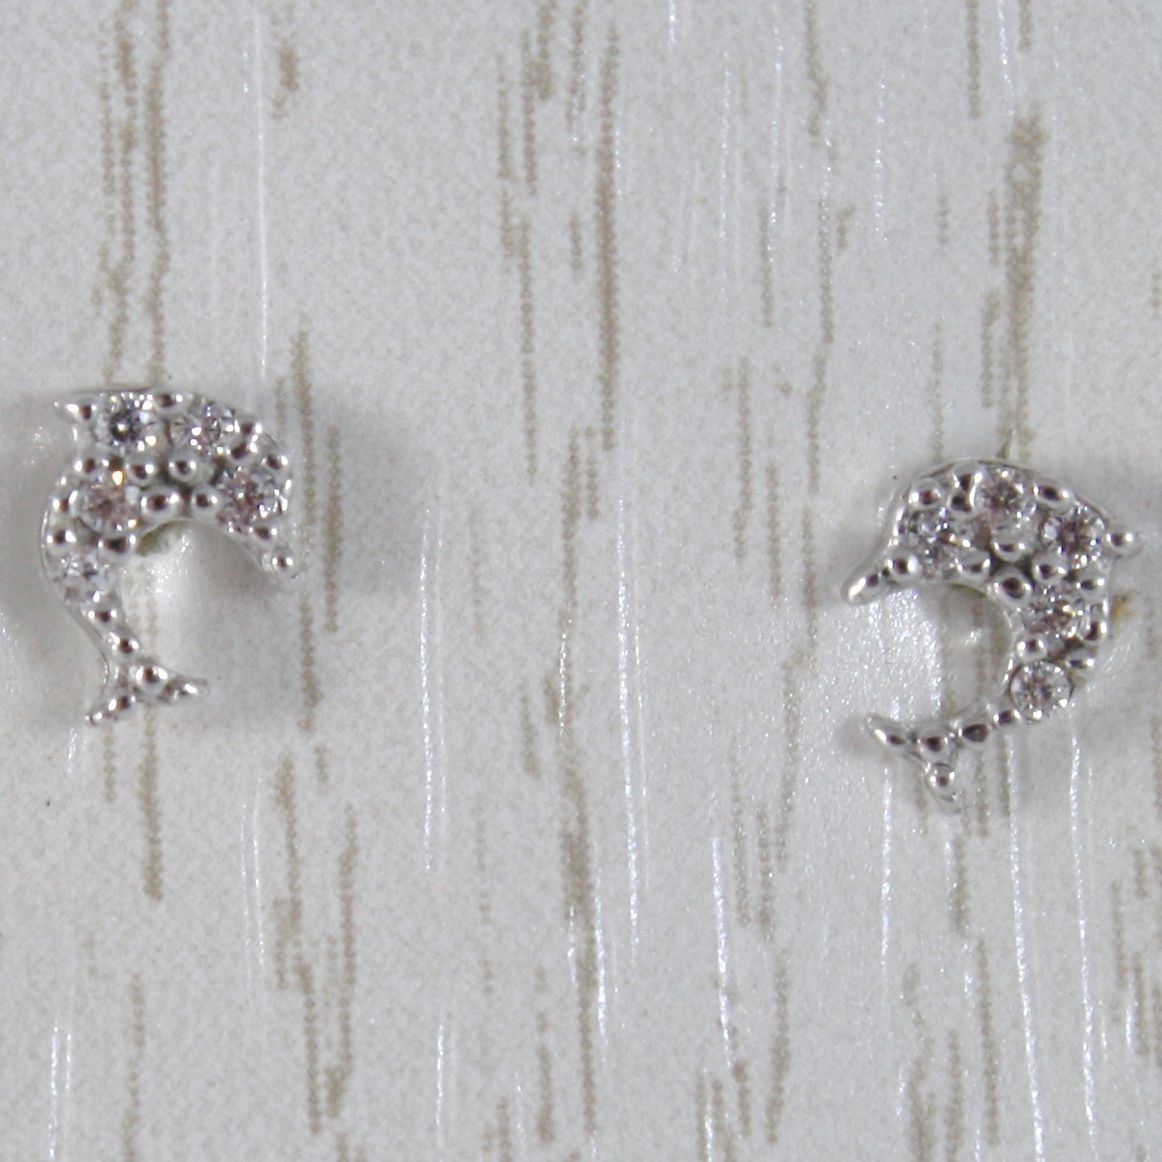 WHITE GOLD EARRINGS 750 18K LOBE, WITH MINI DOLPHINS AND ZIRCON, LONG 6 MM